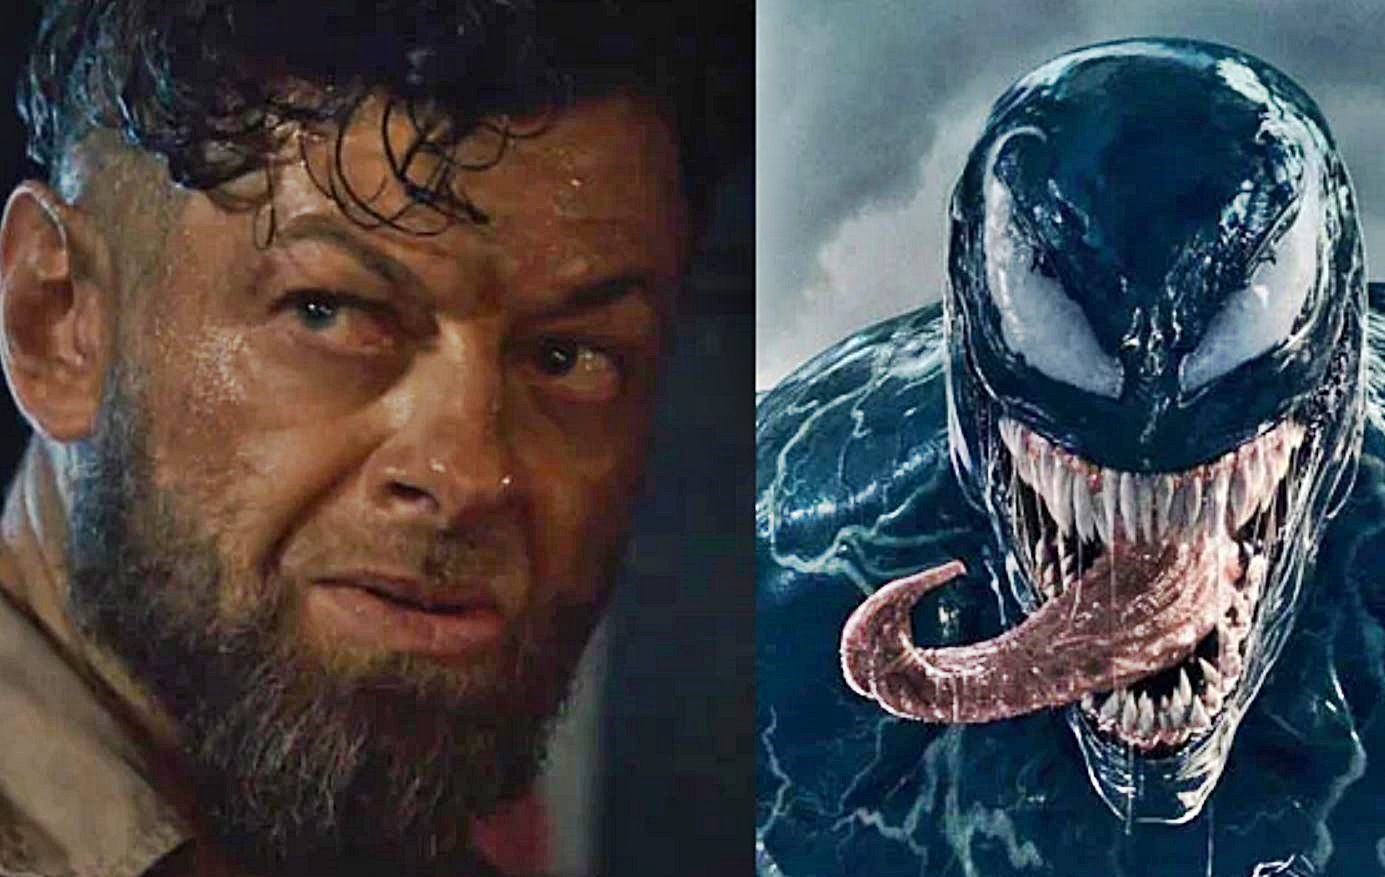 Venom 2' Will be Directed by Lord of the Rings Star Andy